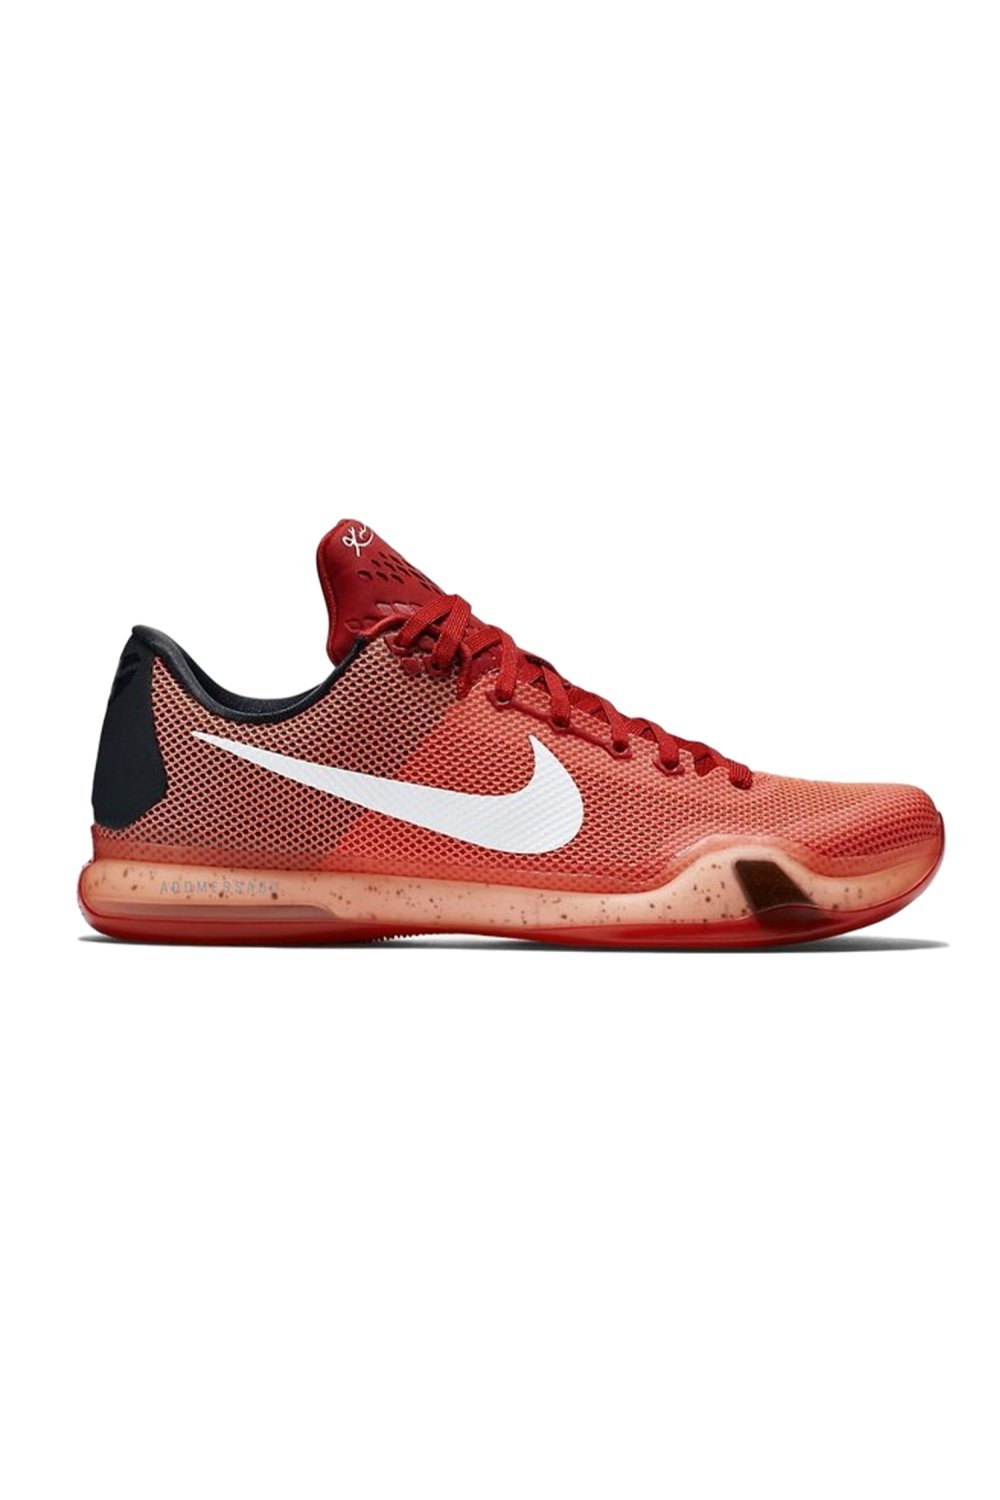 on sale a8d90 c1149 Galleon - Nike Men s Kobe X Low Basketball Sneakers Shoes (10, Color)